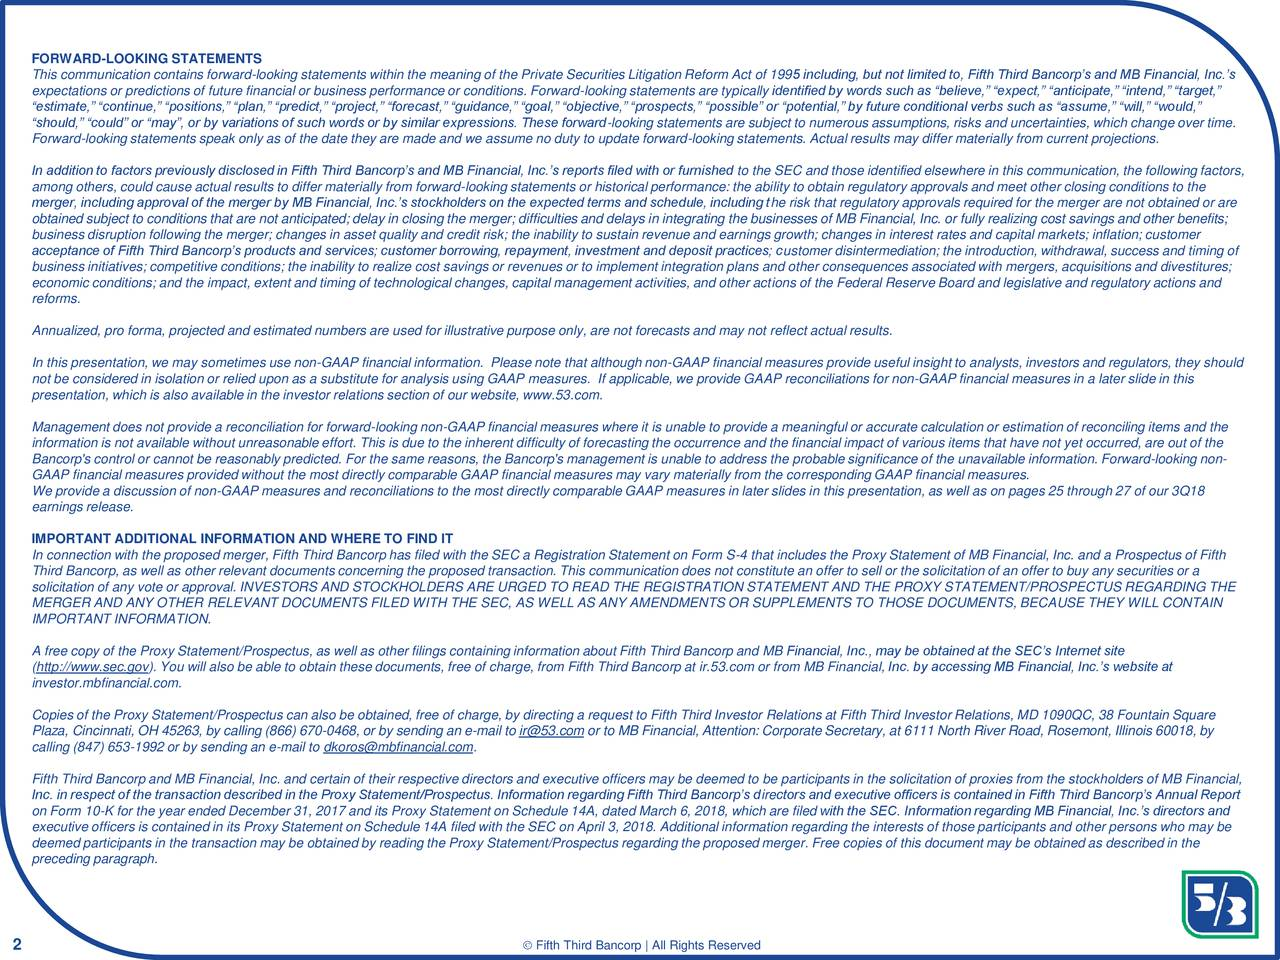 """This communication contains forward-looking statements within the meaning of the Private Securities Litigation Reform Act of 1995 including, but not limited to, Fifth Third Bancorp's and MB Financial, Inc.'s expectations or predictions of future financial or business performance or conditions. Forward-looking statements are typically identified by words such as """"believe,"""" """"expect,"""" """"anticipate,"""" """"intend,"""" """"target,"""" """"estimate,"""" """"continue,"""" """"positions,"""" """"plan,"""" """"predict,"""" """"project,"""" """"forecast,"""" """"guidance,"""" """"goal,"""" """"objective,"""" """"prospects,"""" """"possible"""" or """"potential,"""" by future conditional verbs such as """"assume,"""" """"will,"""" """"would,"""" """"should,"""" """"could"""" or """"may"""", or by variations of such words or by similar expressions. These forward-looking statements are subject to numerous assumptions, risks and uncertainties, which change over time. Forward-looking statements speak only as of the date they are made and we assume no duty to update forward-looking statements. Actual results may differ materially from current projections. In addition to factors previously disclosed in Fifth Third Bancorp's and MB Financial, Inc.'s reports filed with or furnished to the SEC and those identified elsewhere in this communication, the following factors, among others, could cause actual results to differ materially from forward-looking statements or historical performance: the ability to obtain regulatory approvals and meet other closing conditions to the merger, including approval of the merger by MB Financial, Inc.'s stockholders on the expected terms and schedule, including the risk that regulatory approvals required for the merger are not obtained or are obtained subject to conditions that are not anticipated; delay in closing the merger; difficulties and delays in integrating the businesses of MB Financial, Inc. or fully realizing cost savings and other benefits; business disruption following the merger; changes in asset quality and credit risk; the inability to sustain revenue and earnings g"""